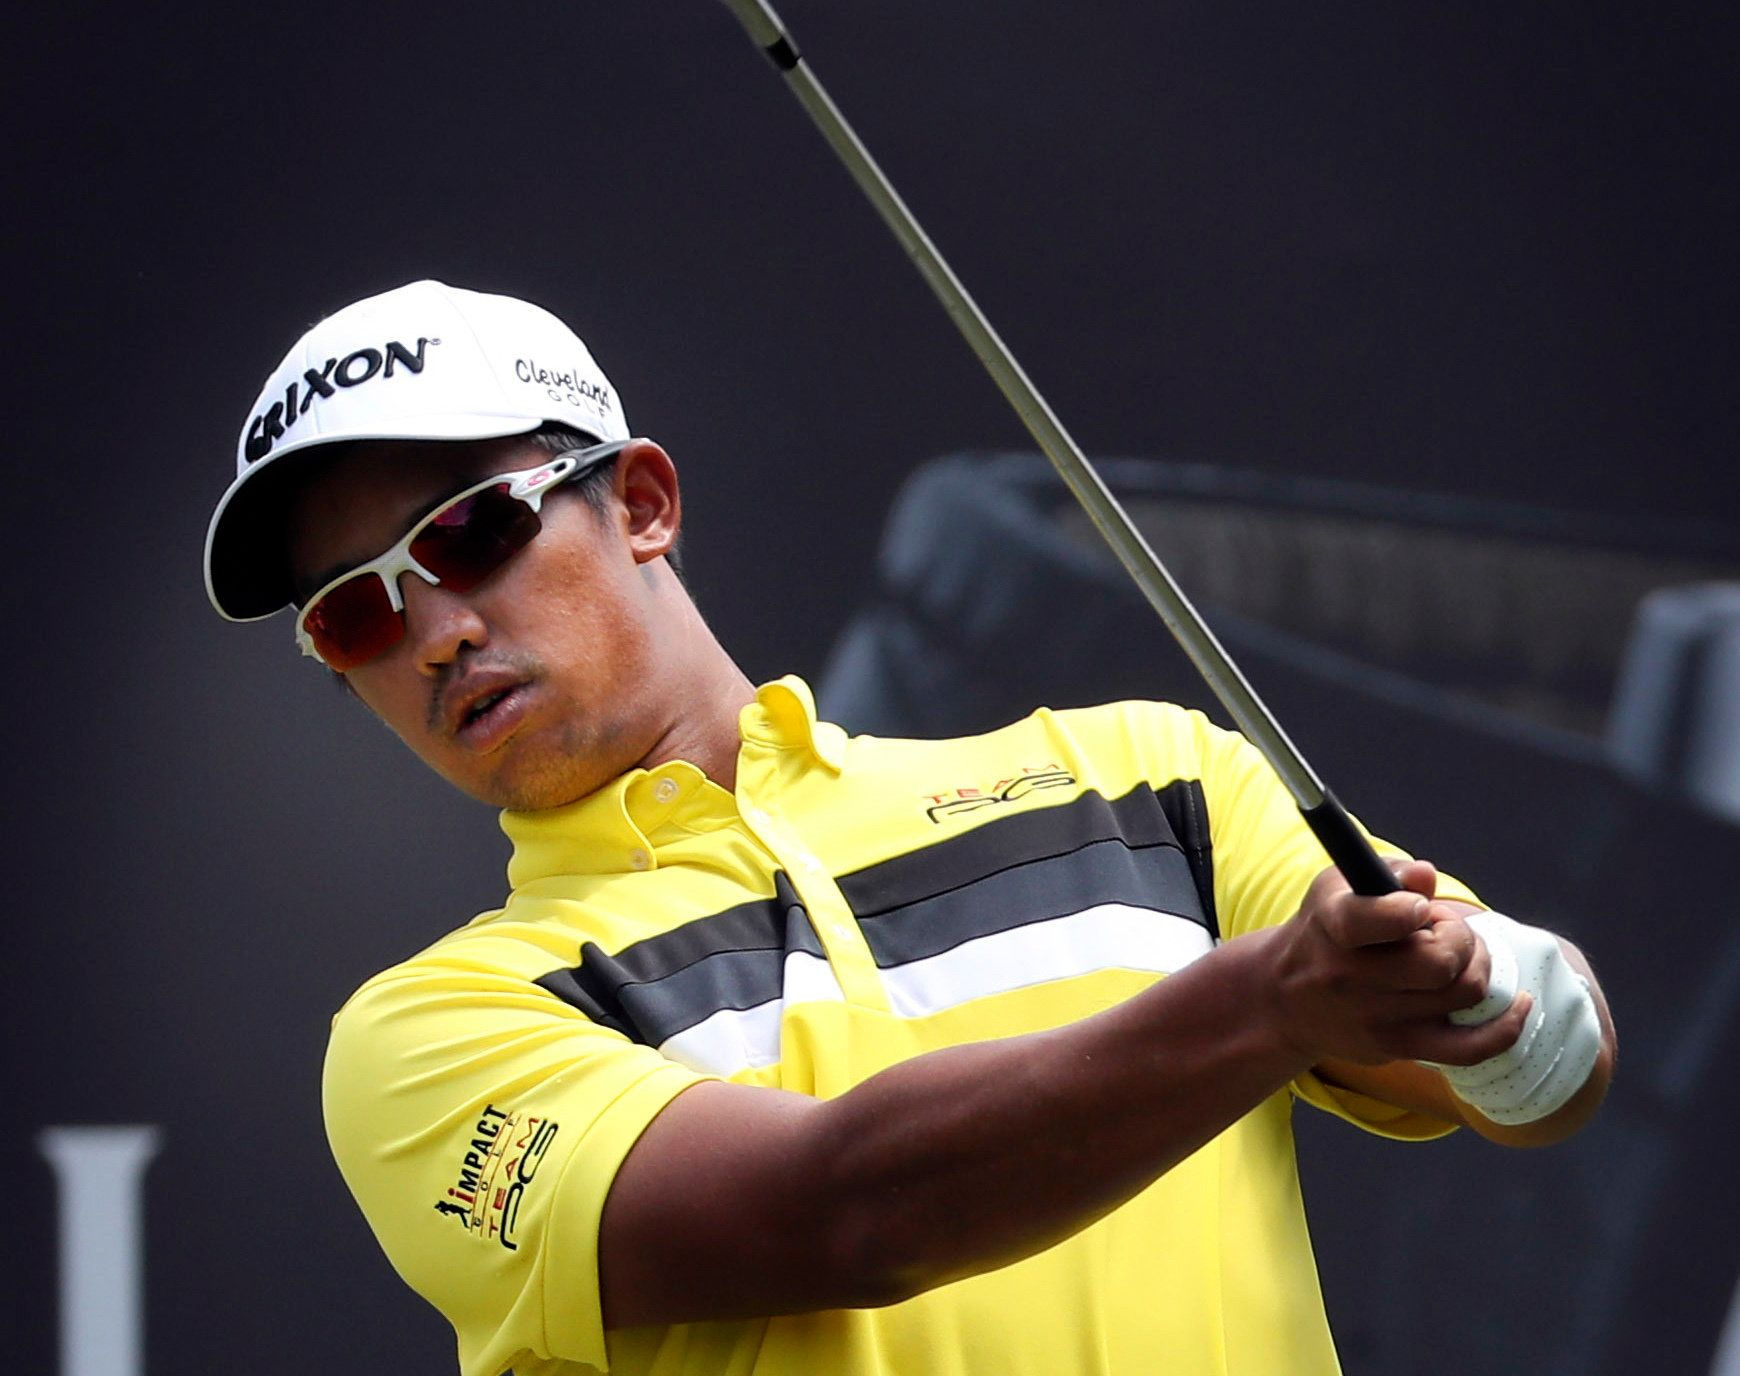 """FILE - In this Friday, Feb. 10, 2017 file photo, Arie Irawan of Malaysia tees off during the second day of the Maybank Championship golf tournament in Kuala Lumpur, Malaysia. Officials at the Sanya Championship said Sunday, April 7, 2019 that 28-year-old Malaysian golfer Arie Irawan died in his hotel room from """"apparent natural causes,"""" and the PGA Tour Series-China canceled the final round of the tournament. The PGA Tour Series-China said in a statement that Irawan missed the 36-hole cut Friday in the tournament at Sanya Yalong Bay Golf Club. It said the official coroner's report had not been completed. (AP Photo/Daniel Chan, file)"""